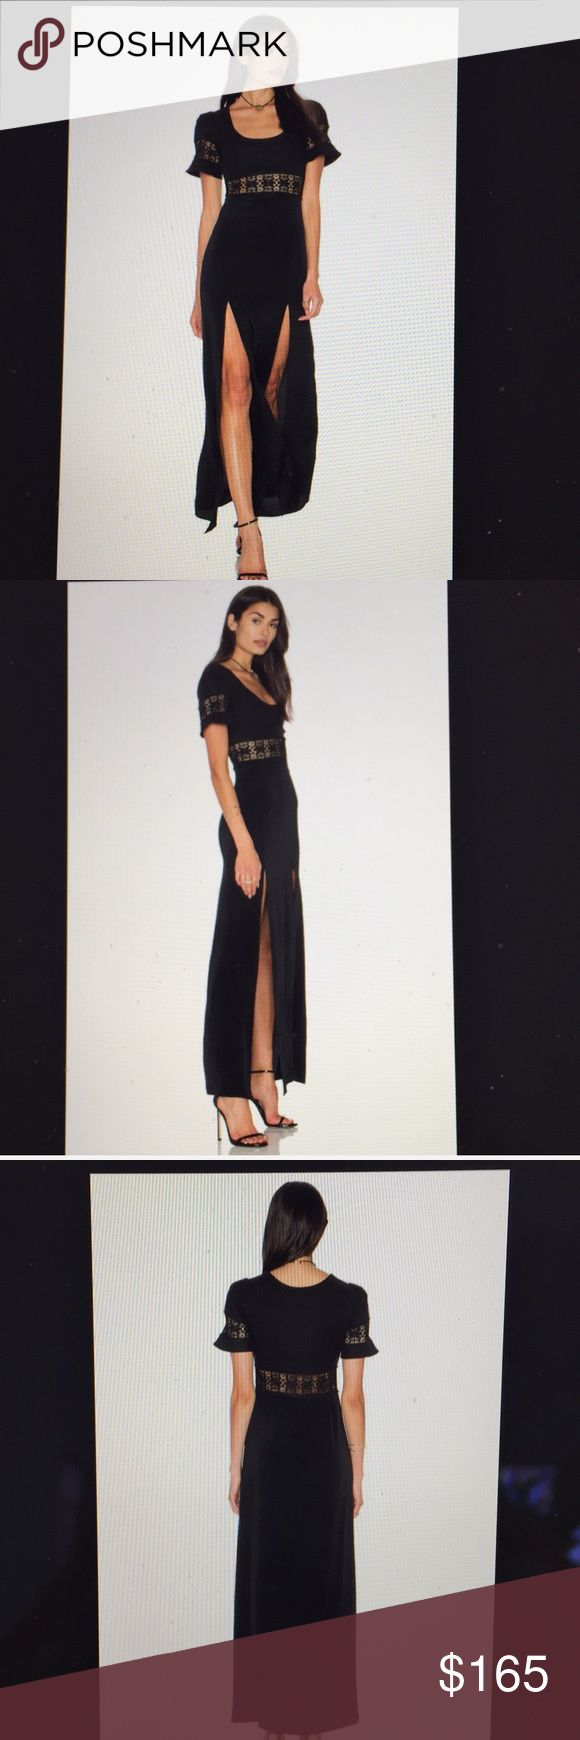 Stone Cold Fox Seymour Gown.Black/ NWT. Size 0/XS SCF's fabulous Seymour Gown. Fitted Gown. Delicately made. One tier of cut out Lace is sewn between the linen top & silk bottom. Top is 100% stretch linen. Skirt is 100% silk. High slits on front of dress, semi- low neckline, short sleeves are trimmed with lace panel. Side zip. Full length Gown.  BNWT. Size 0. Same as XS Stone Cold Fox Dresses Maxi